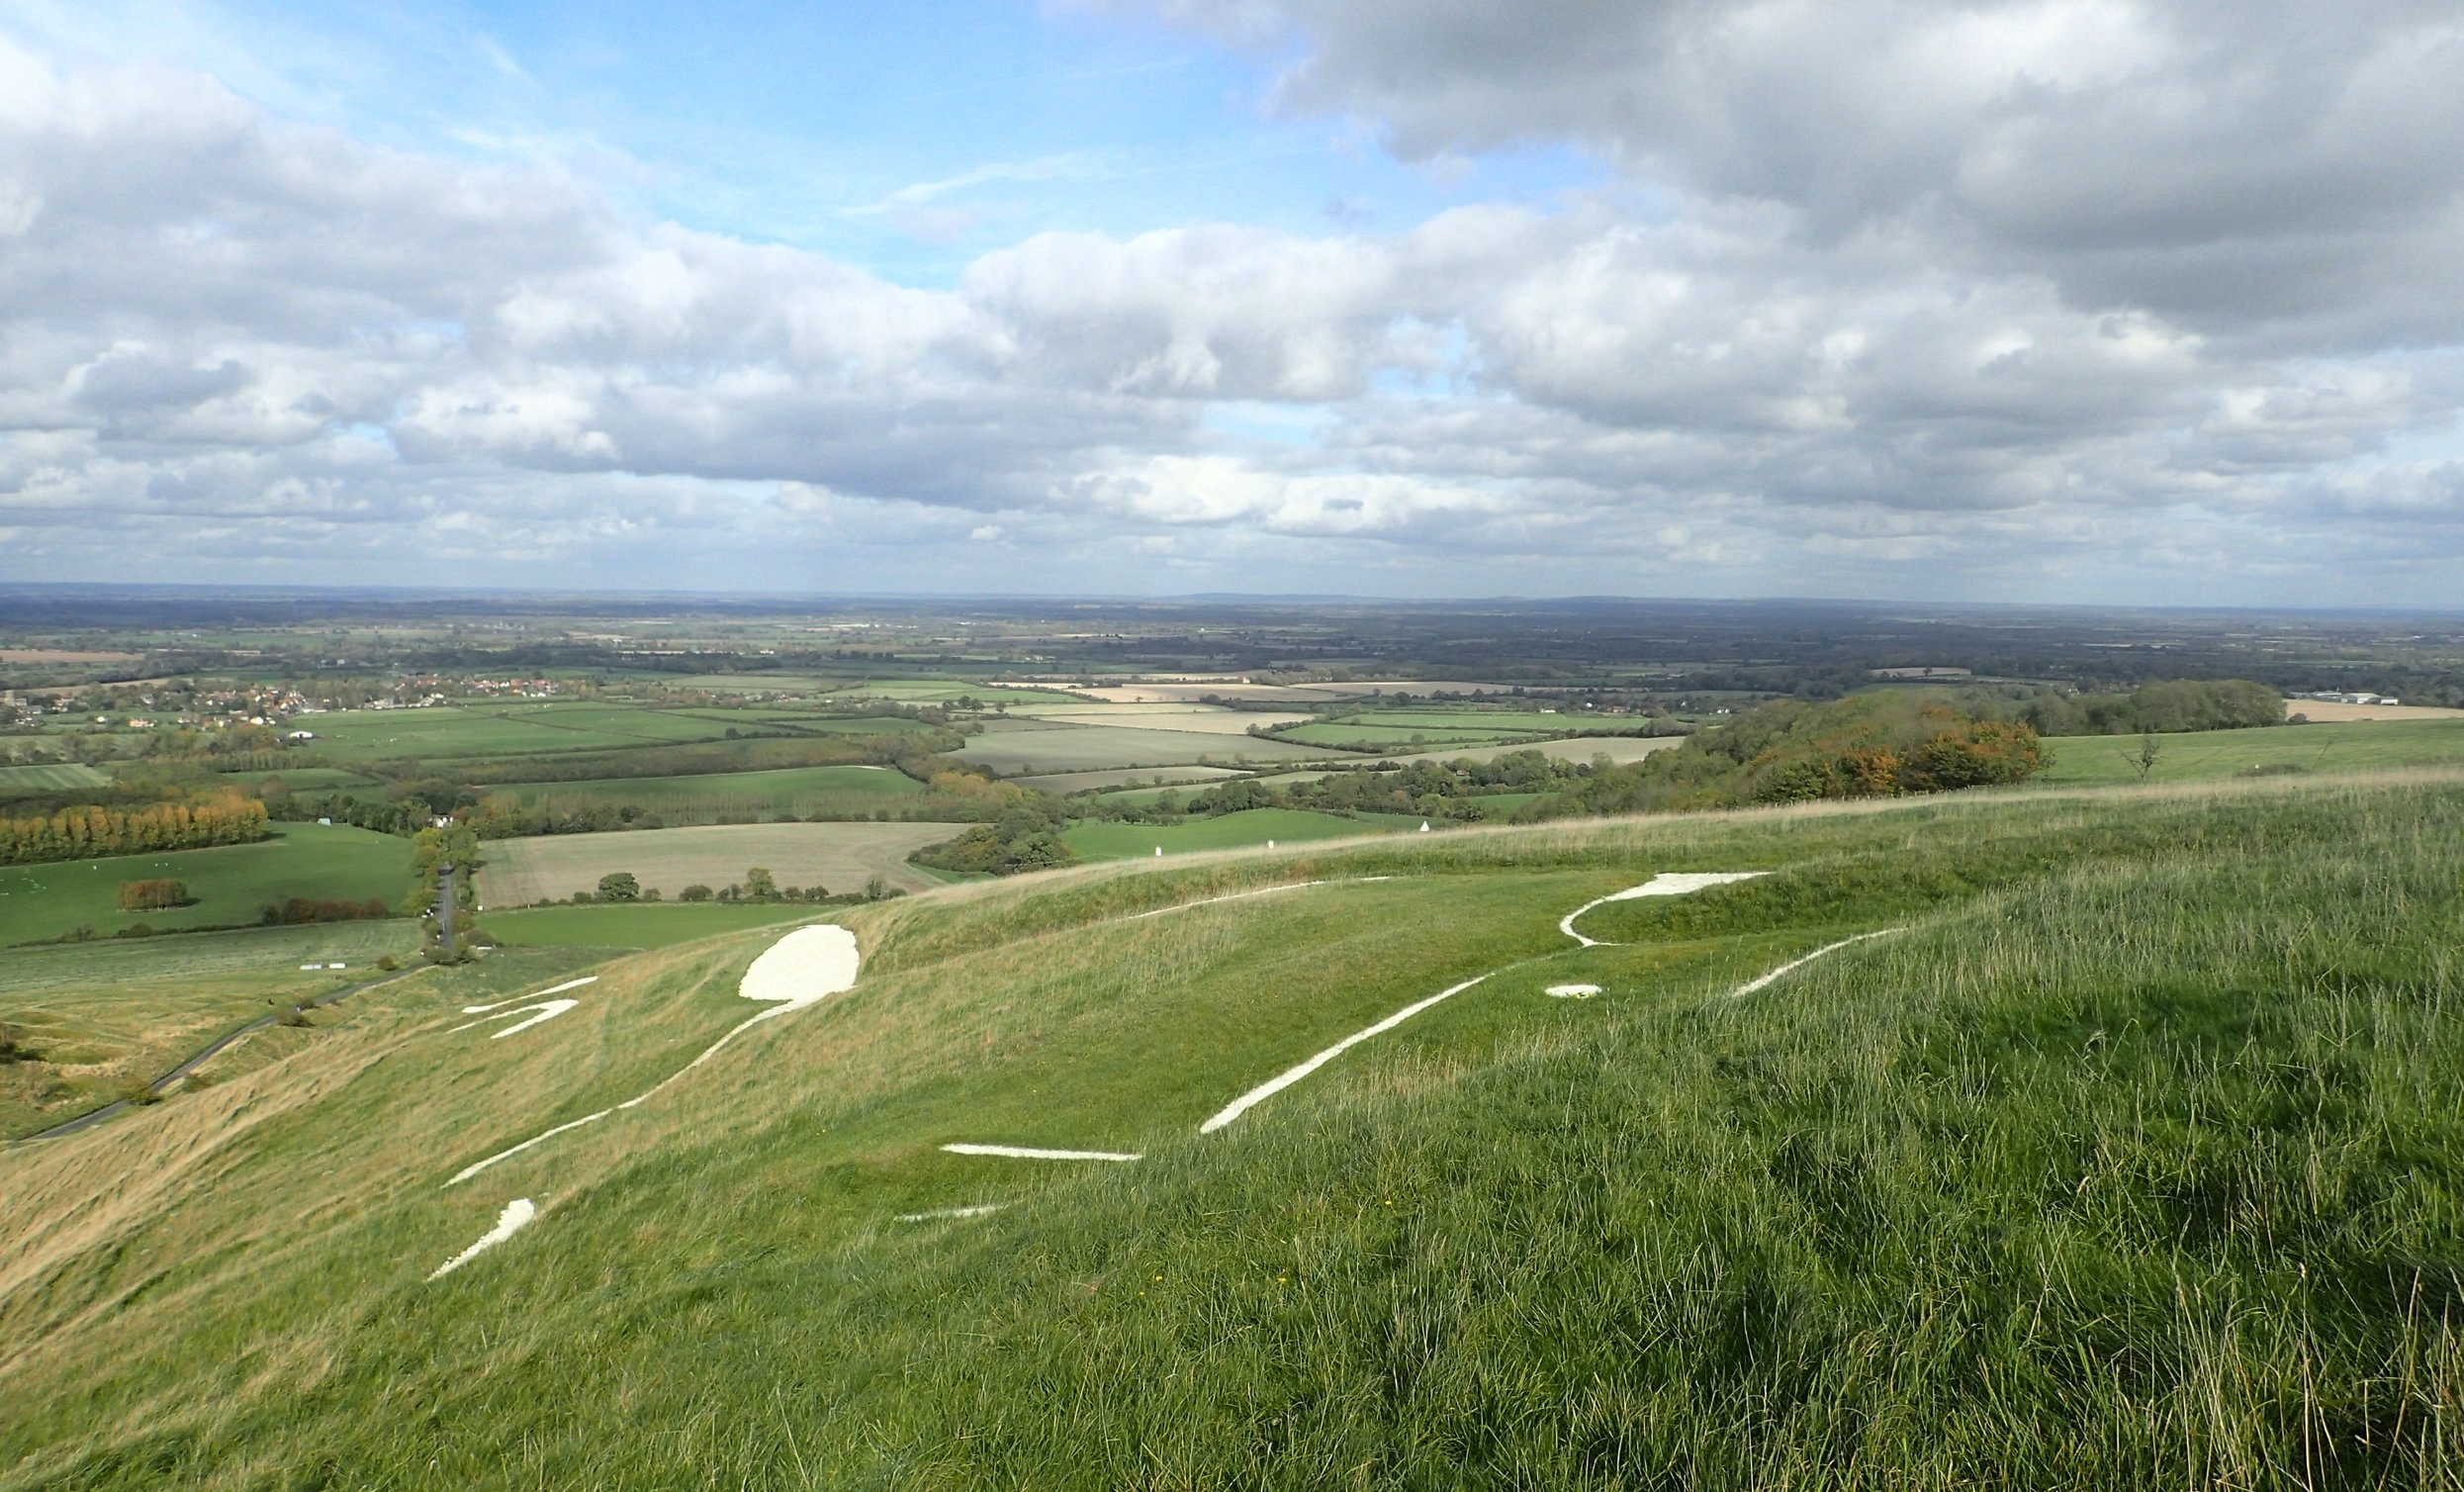 View of the White Horse from the hill